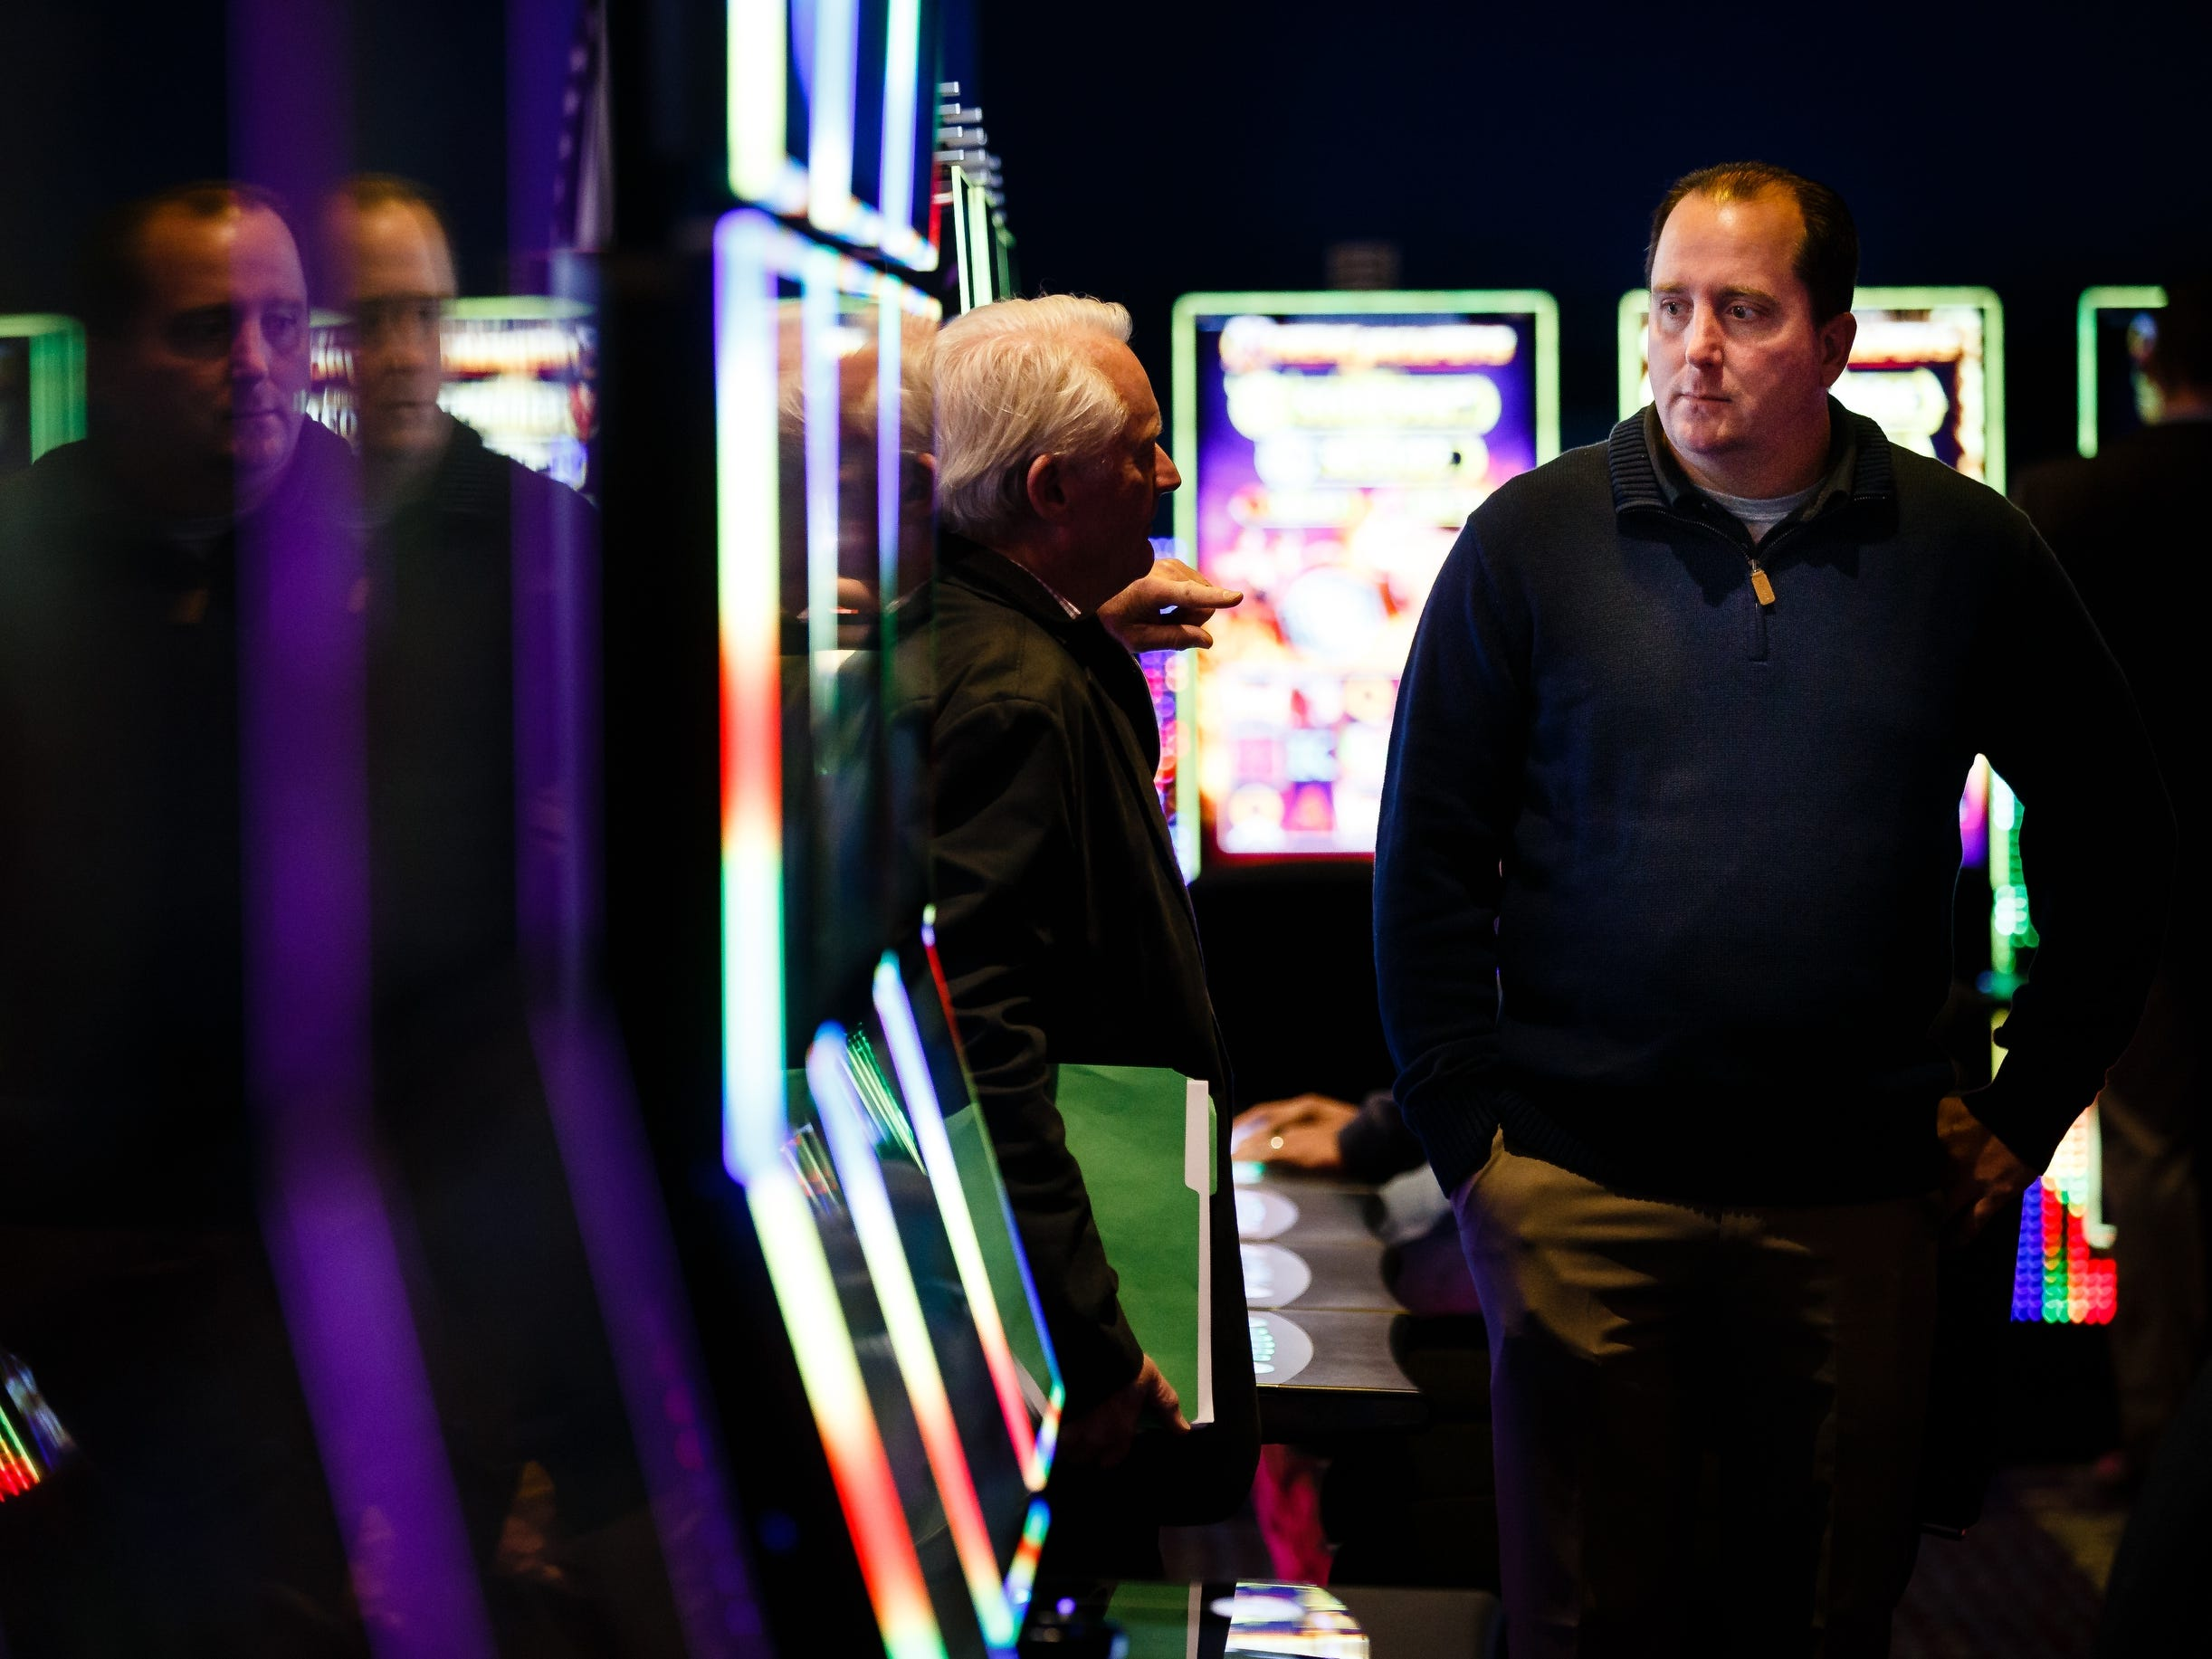 Carter Lake mayor Ron Cumberledge at the grand opening of The Ponca Tribe of Nebraska's Prairie Flower Casino on Thursday, Nov. 1, 2018, in Carter Lake. Both Iowa and Nebraska officials have tried to block the casino in federal court Ð Iowa because of competition with other Iowa casinos and Nebraska because the casino sits just miles away from Omaha where gambling is illegal.